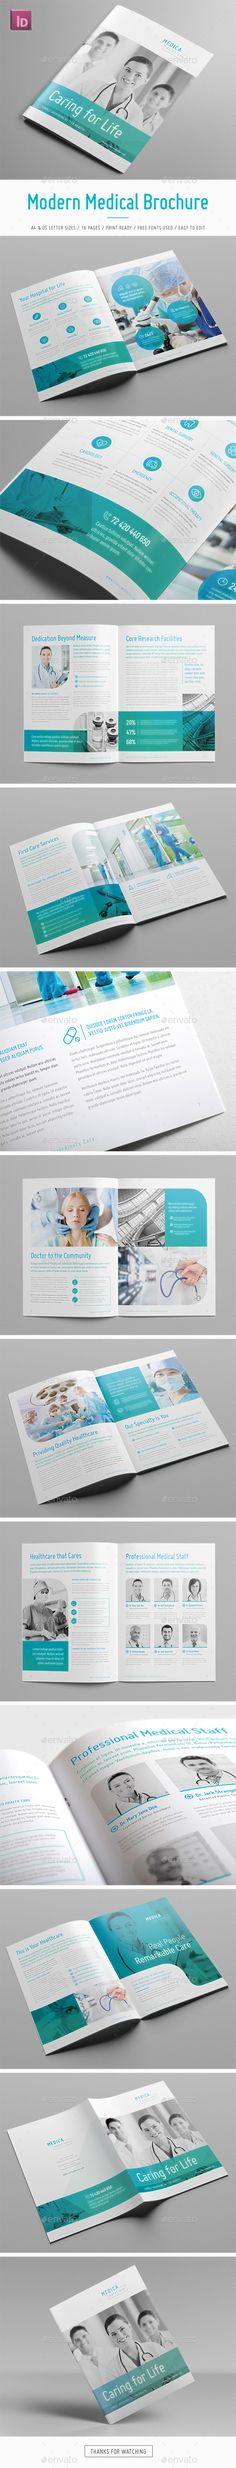 Modern Medical Square Trifold Brochure Brochure template - medical brochure template